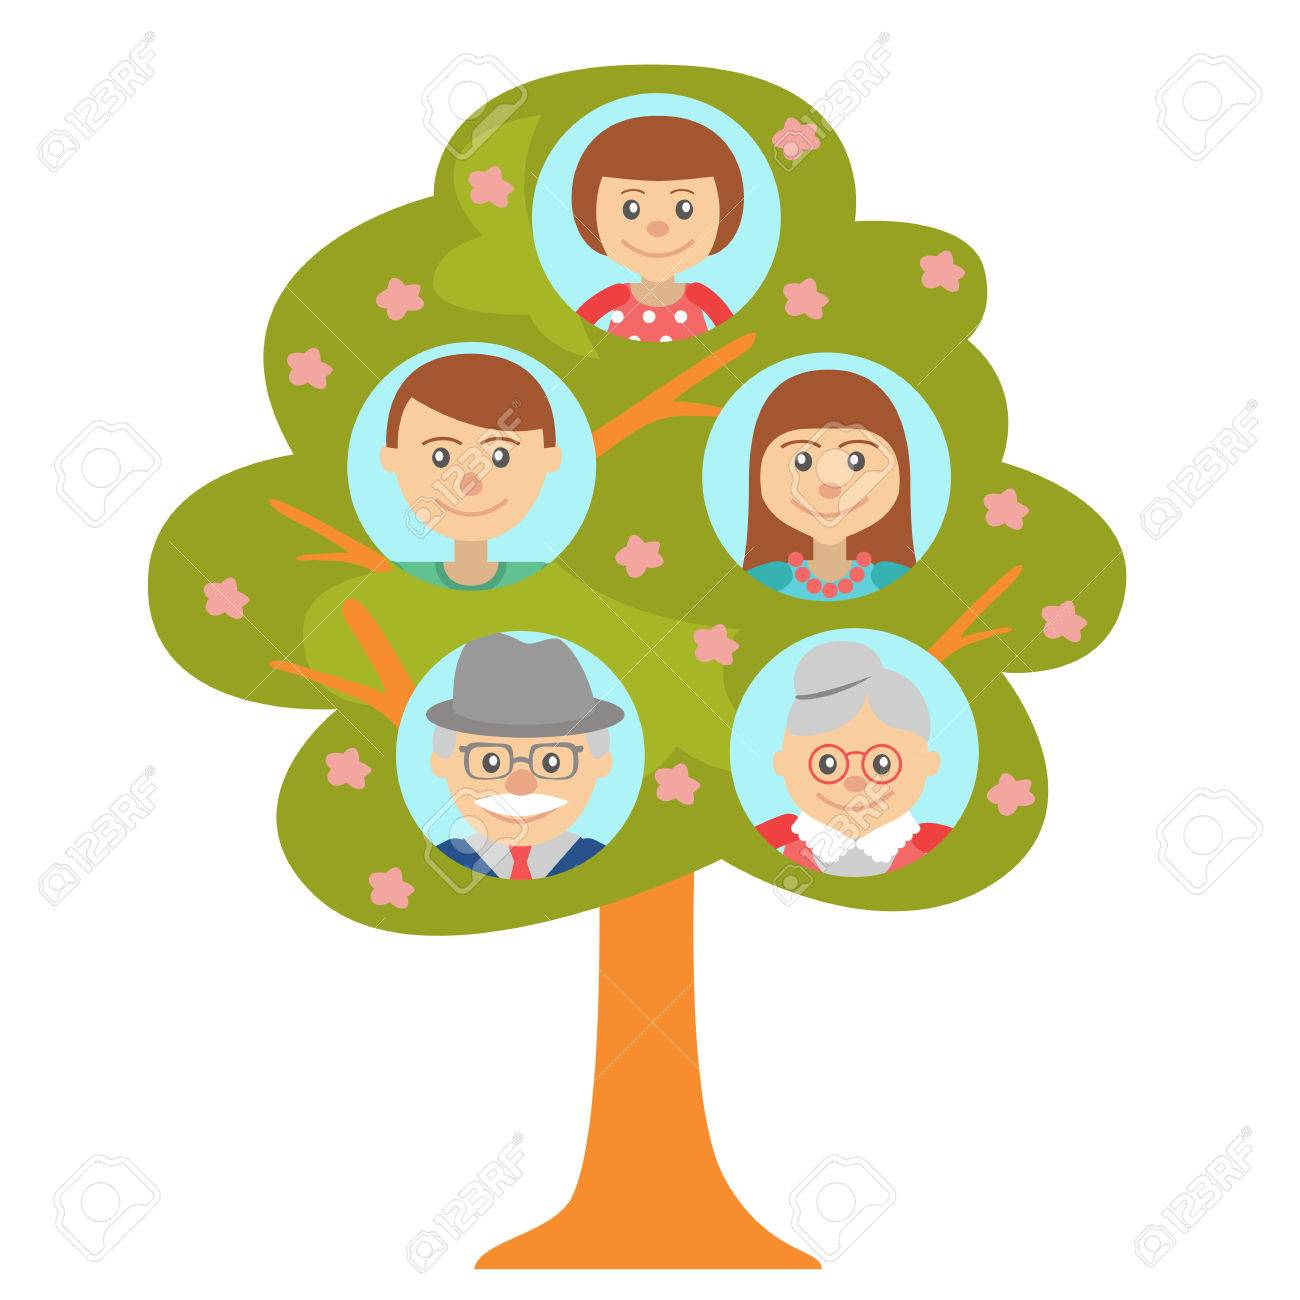 1300x1300 Cartoon Generation Family Tree Illustaration Isolated On White